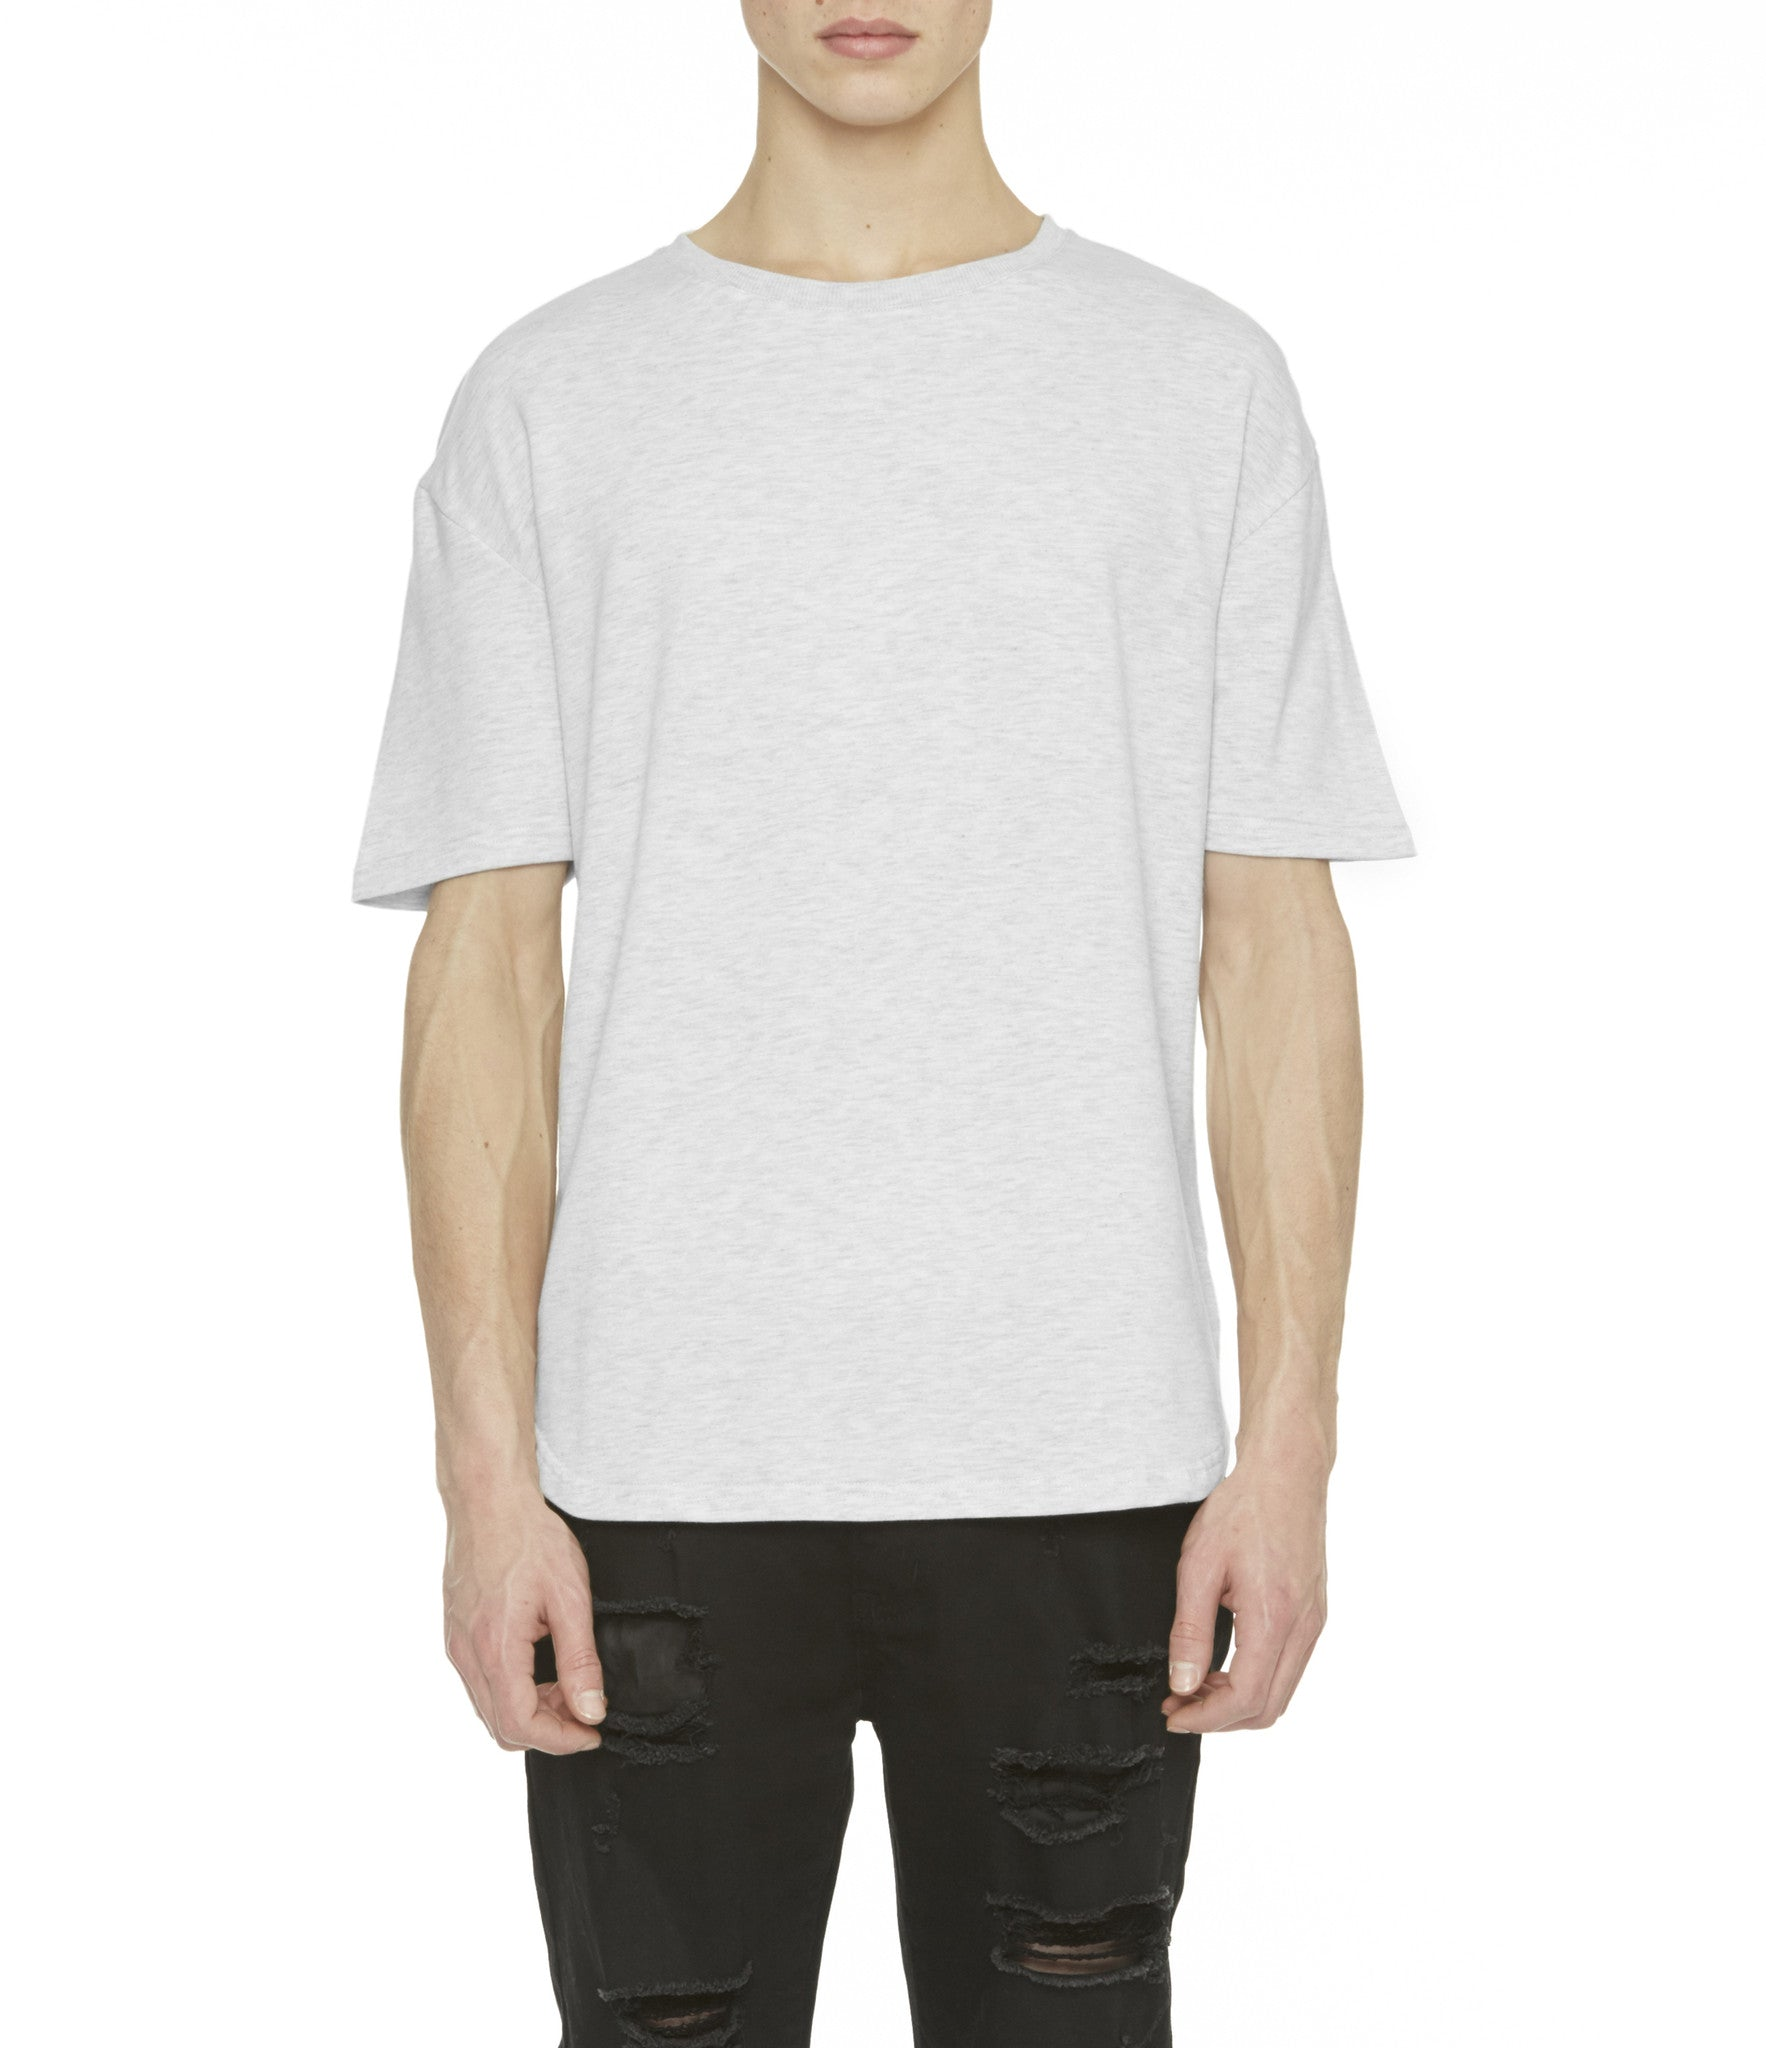 TS263 Drop Shoulder Oversized Tee - Heather Grey - underated london - underatedco - 5